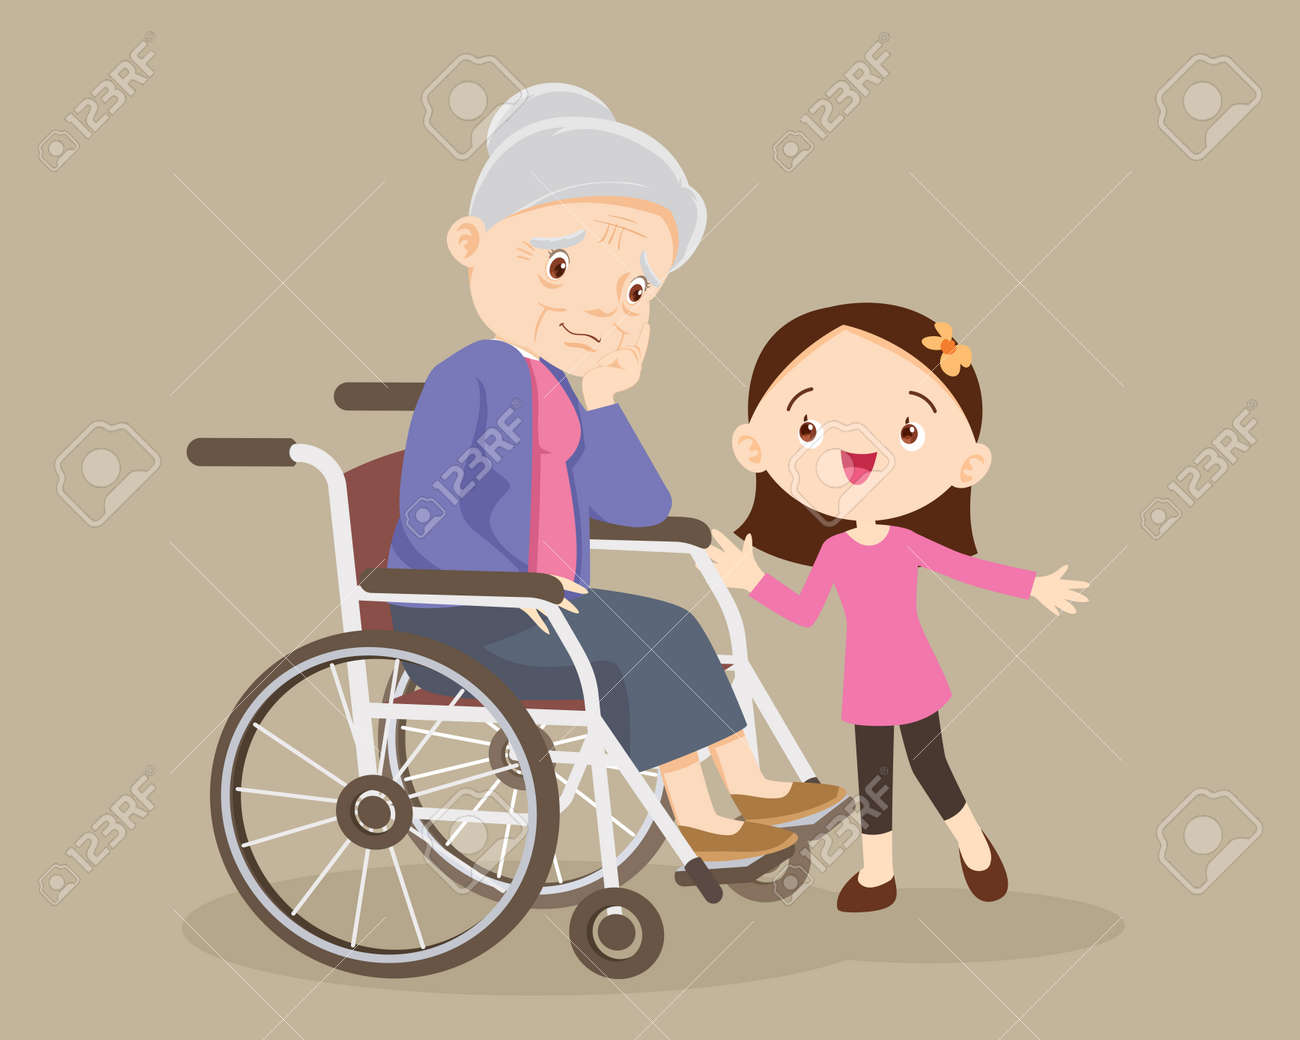 elderly are sad, the child consoling, sad elderly woman Bored, Girl consoling Senior woman sitting alone on wheelchair. Careful caregiver taking care of the patient. Child Girl and grandmother - 165794378